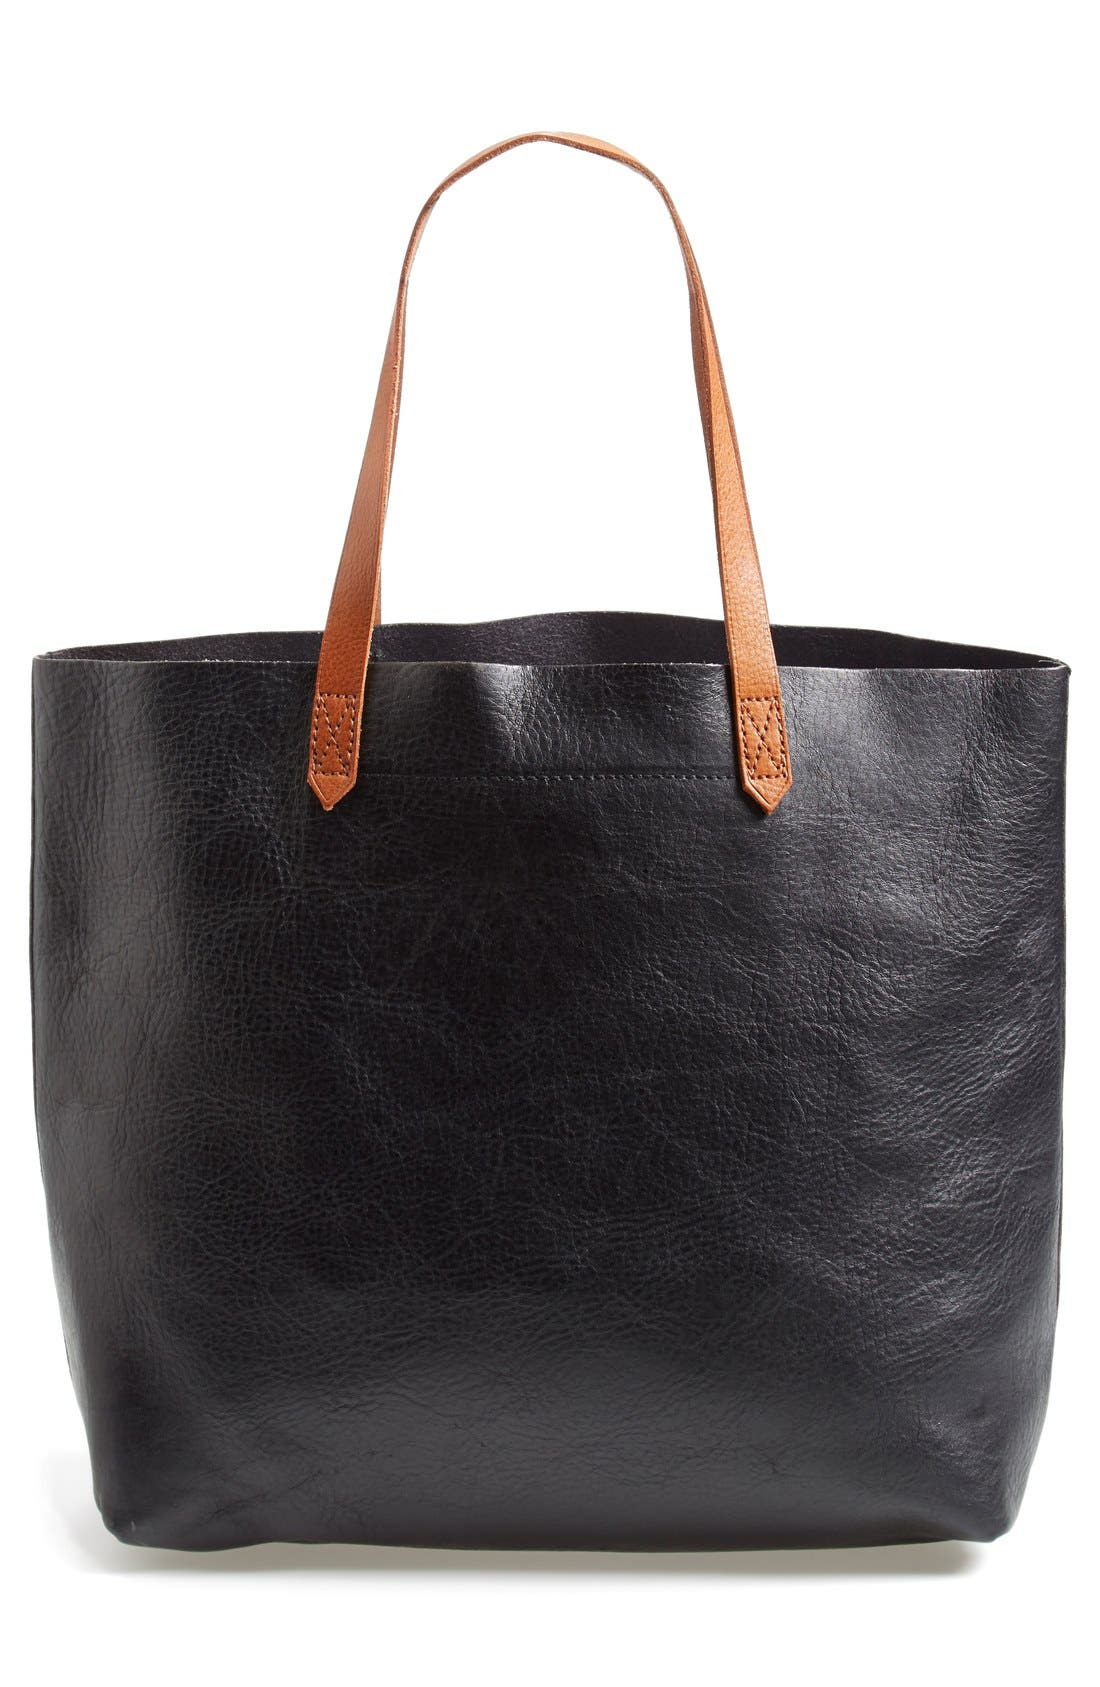 MADEWELL,                             'The Transport' Leather Tote,                             Main thumbnail 1, color,                             TRUE BLACK